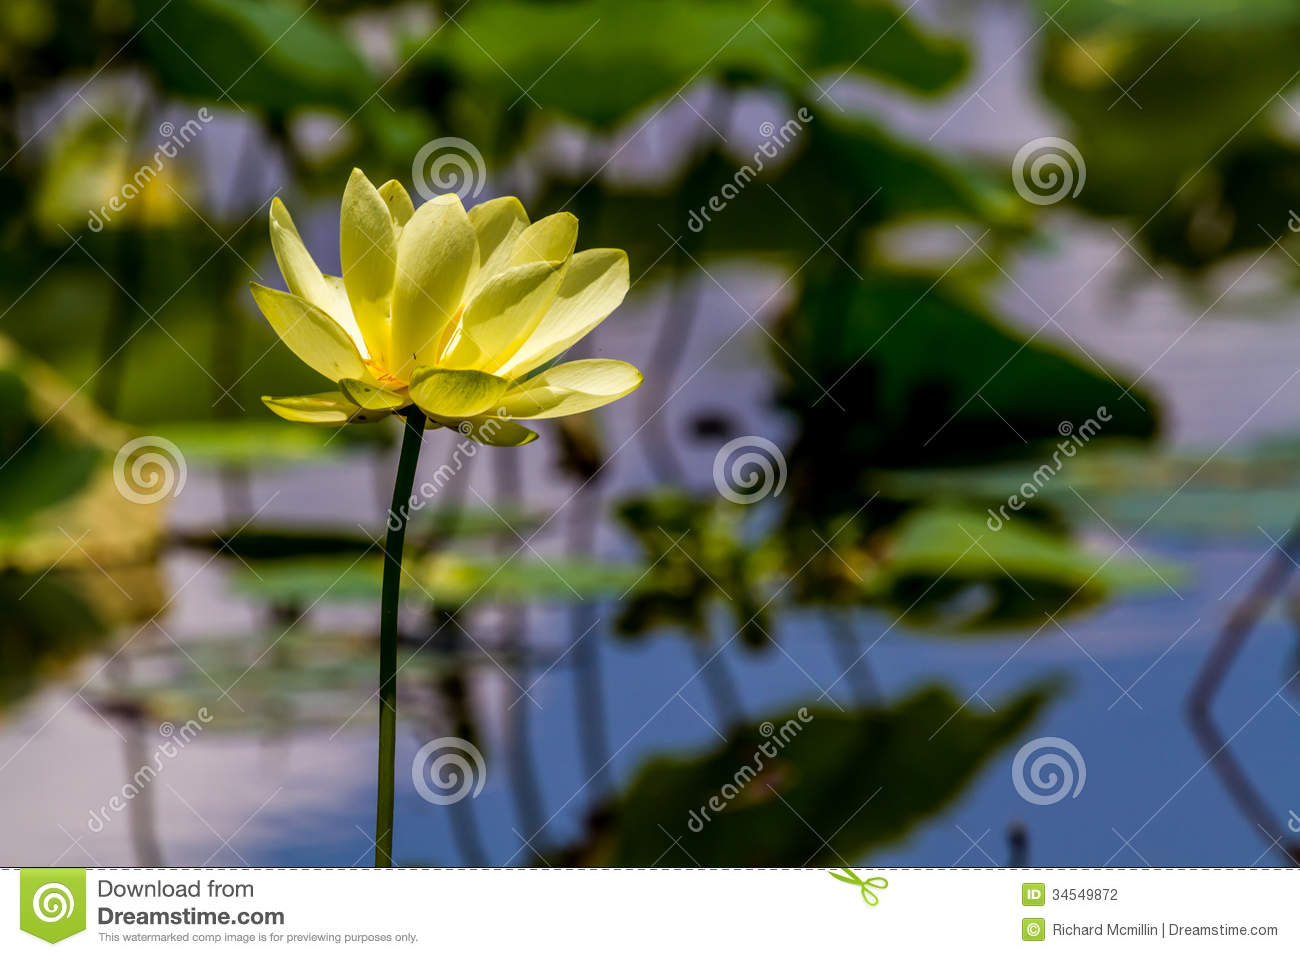 Belle Lotus Wildflower jaune de floraison